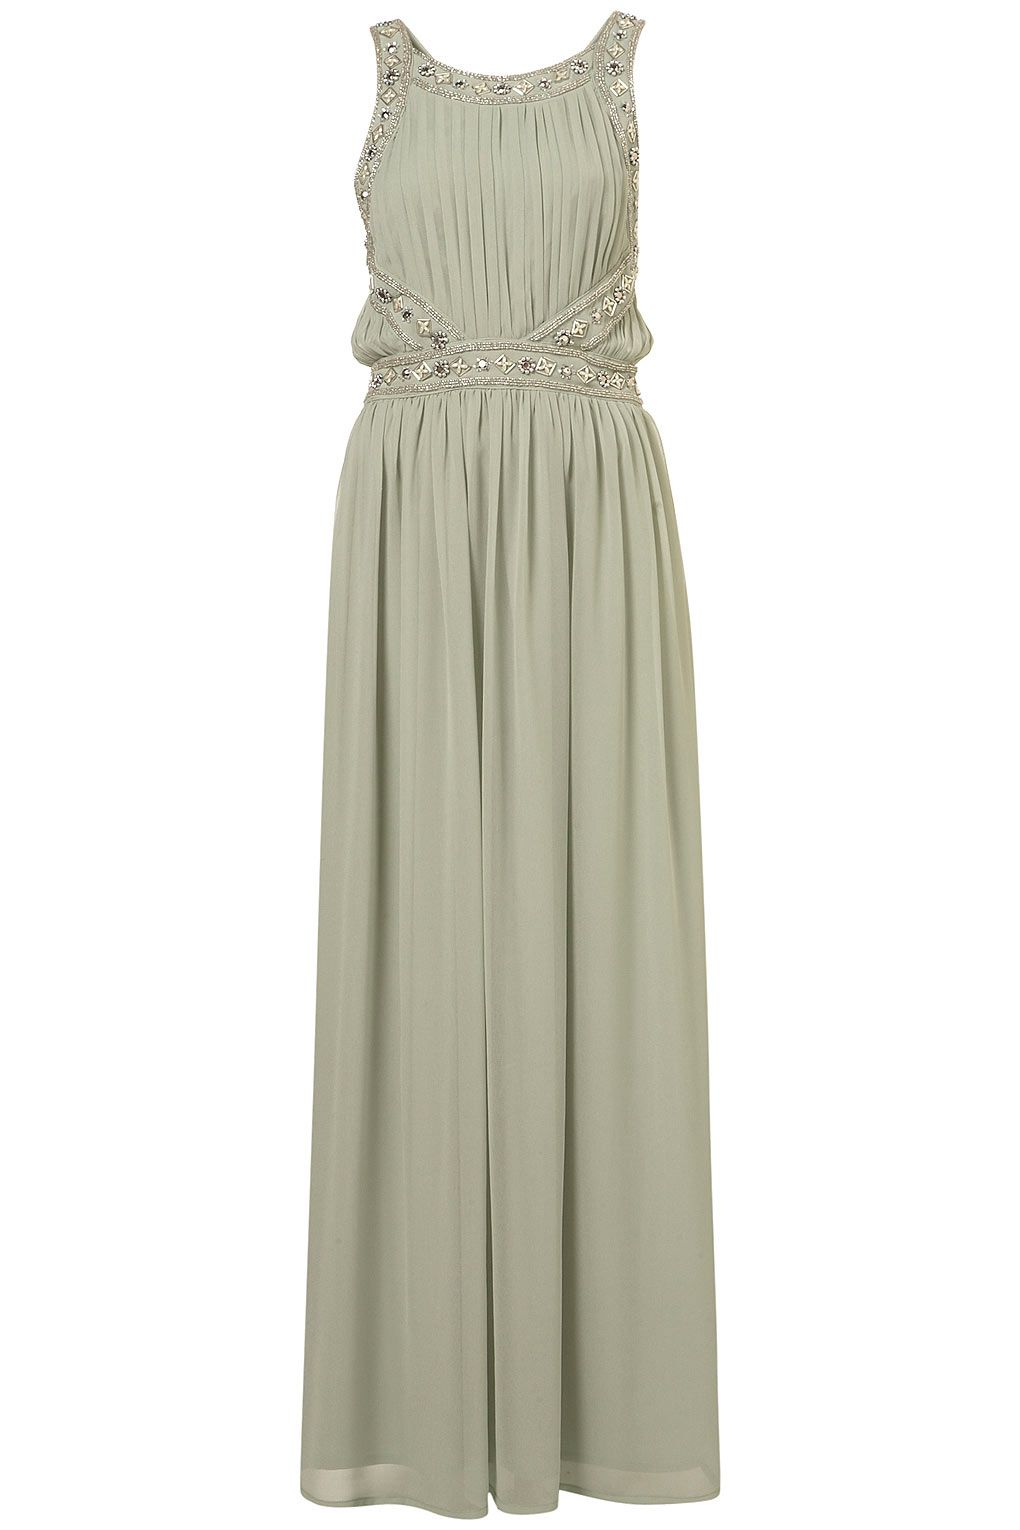 59ecf13a25d8 Embellished Mint Maxi Dress from Topshop....so perfect, could dress it up  with some black suede strappy heels or dress it down with some braided  white ...